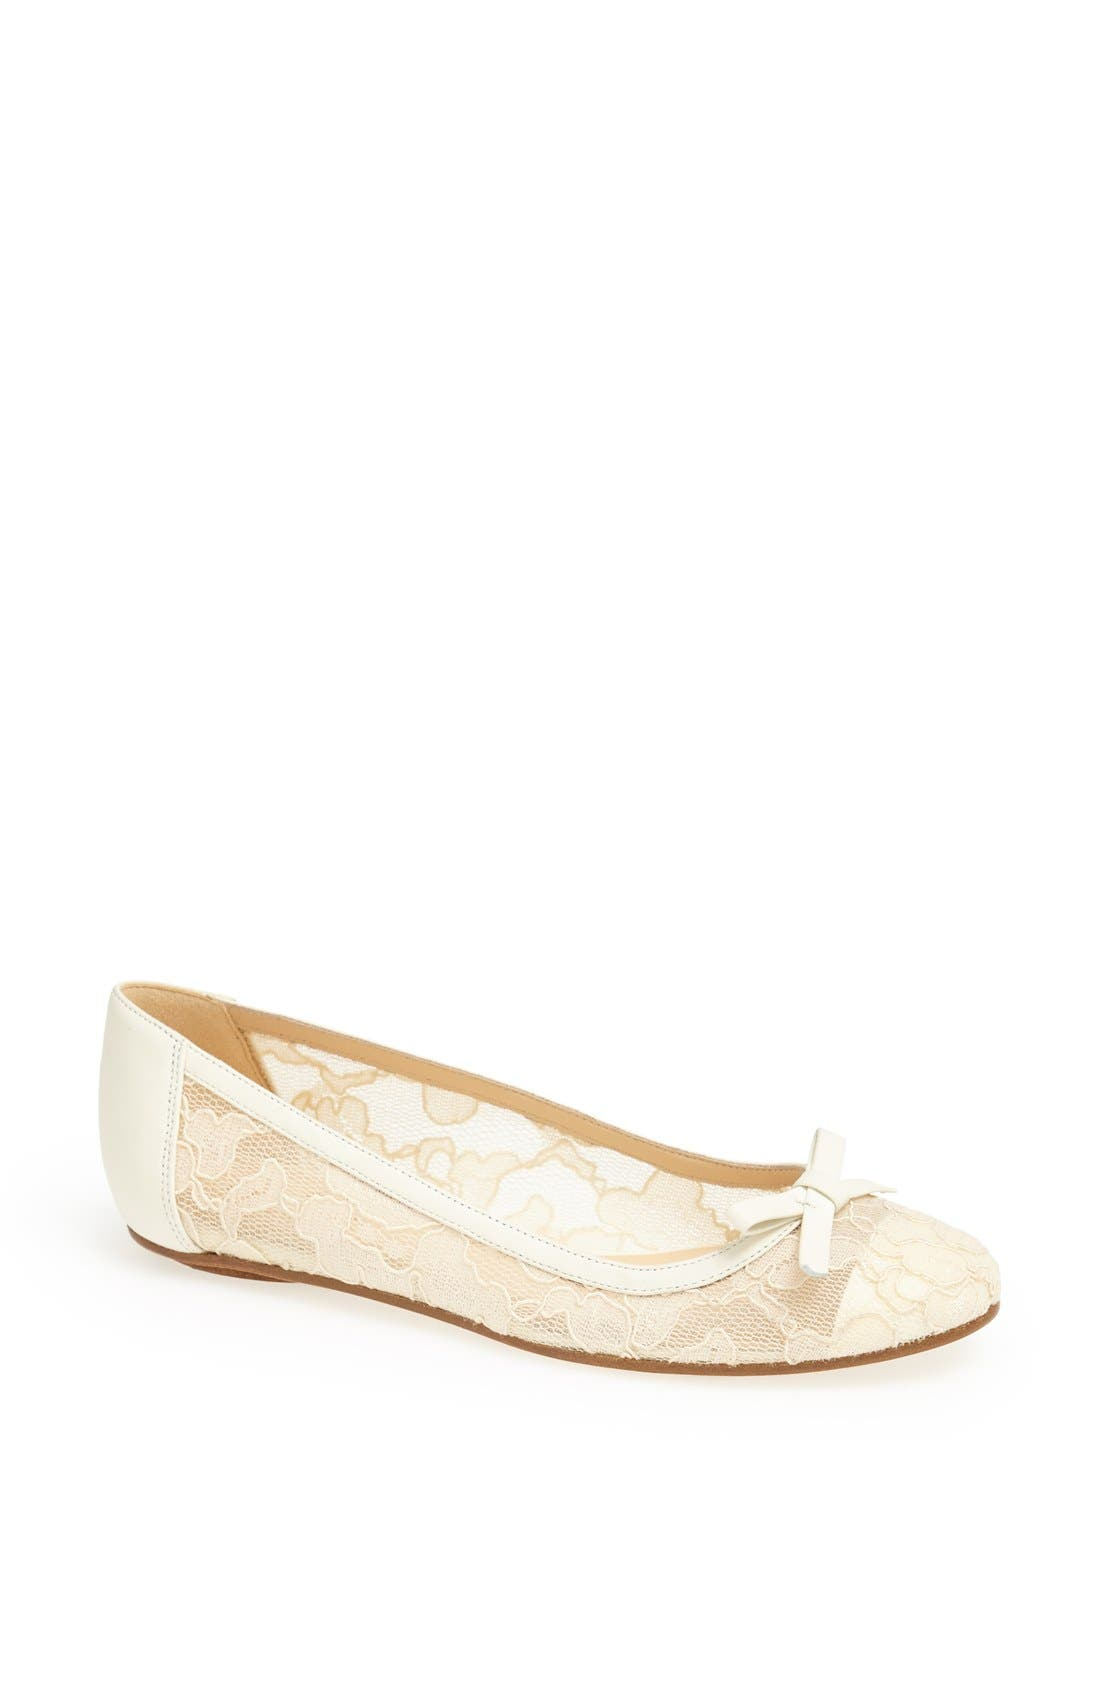 Main Image - kate spade new york 'banner' lace & leather flat